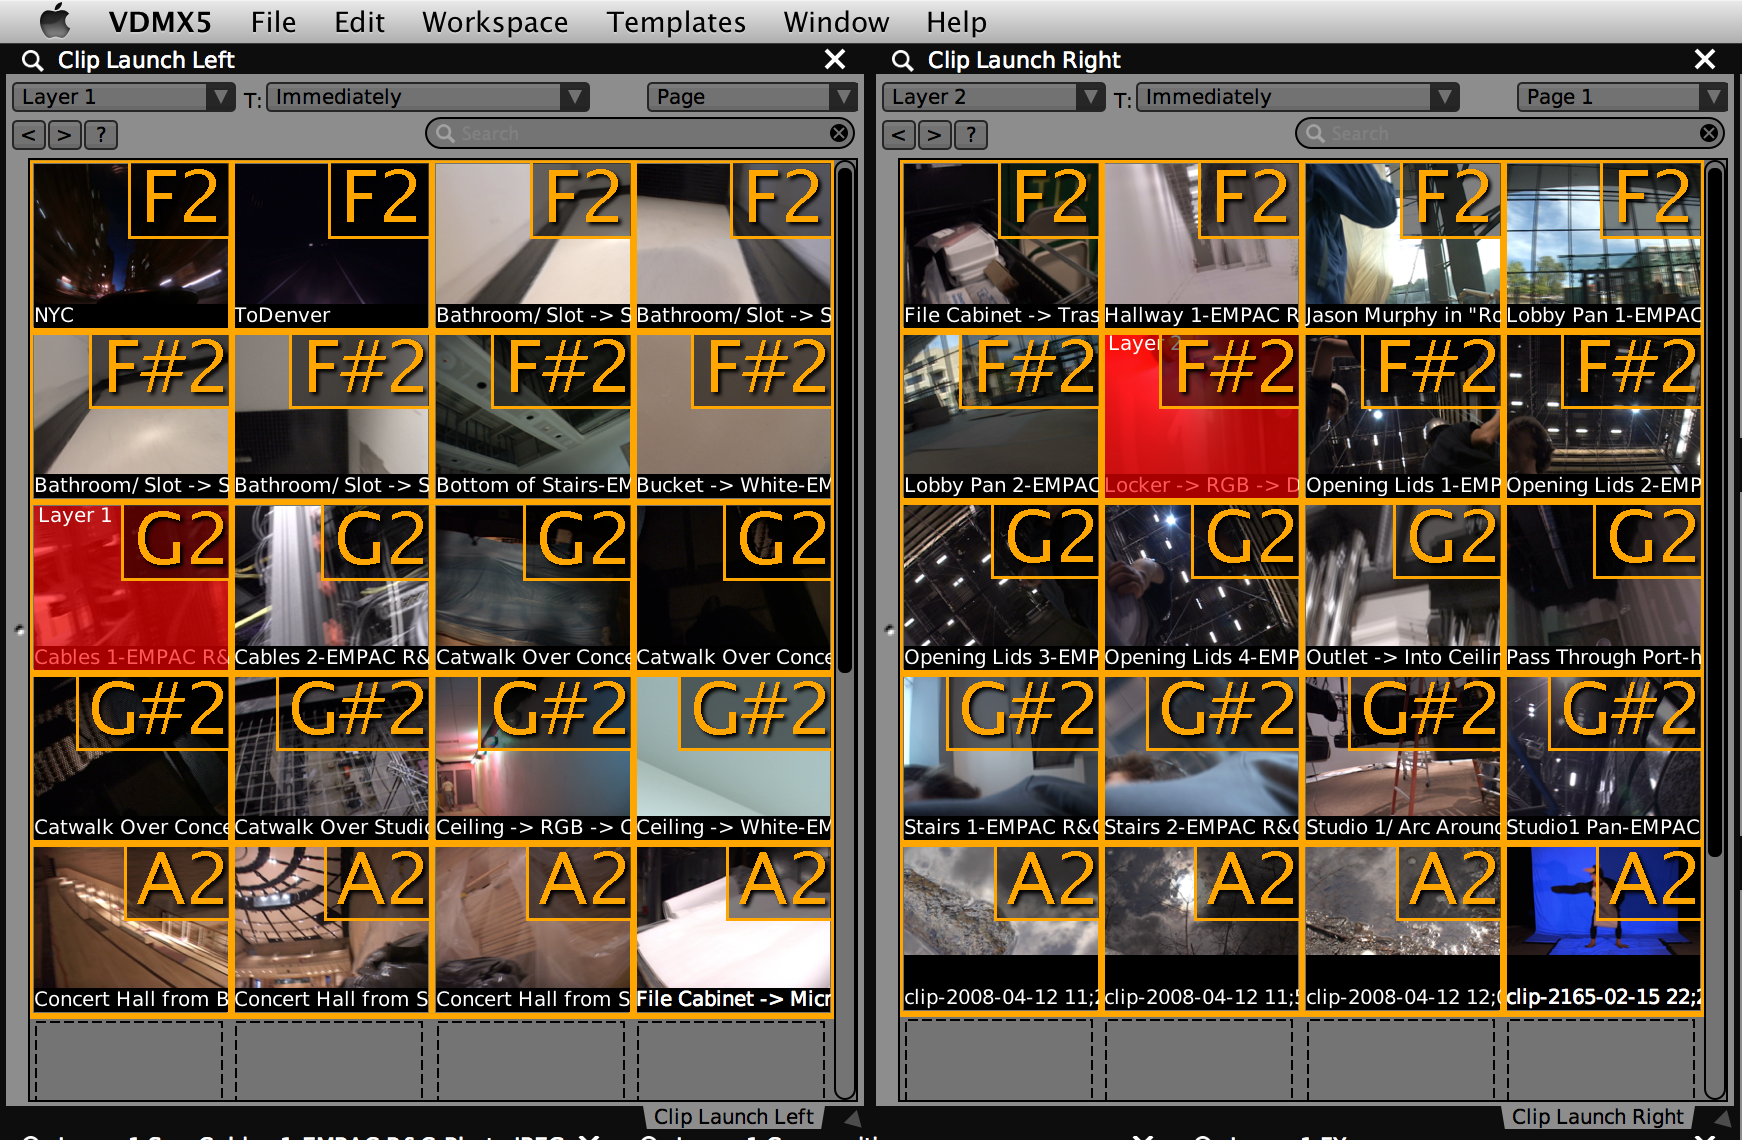 Left and Right Media Bins for Layer 1 and Layer 2 respectively..